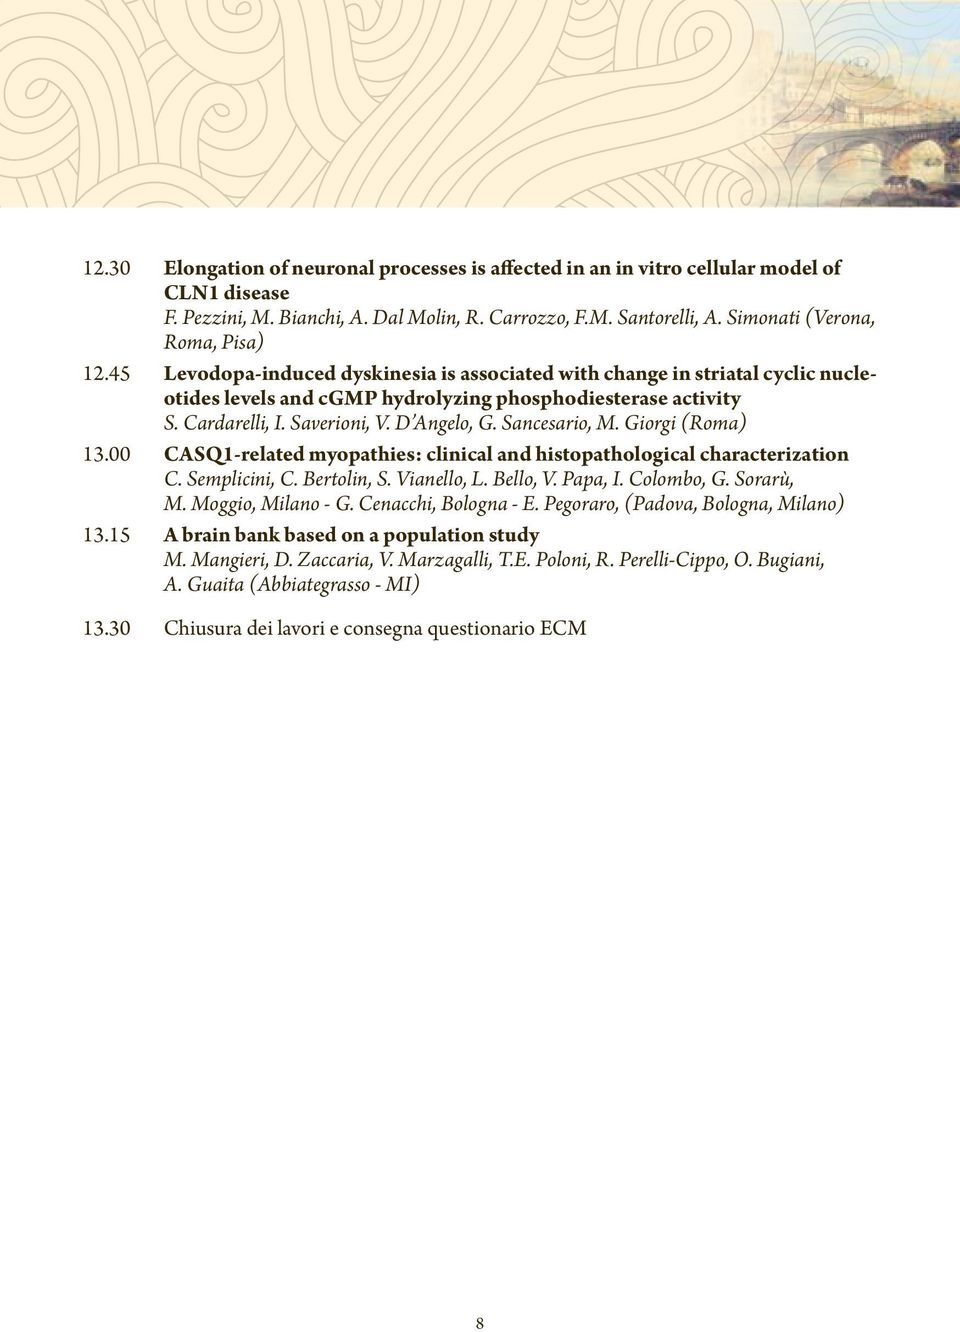 Saverioni, V. D Angelo, G. Sancesario, M. Giorgi (Roma) 13.00 CASQ1-related myopathies: clinical and histopathological characterization C. Semplicini, C. Bertolin, S. Vianello, L. Bello, V. Papa, I.